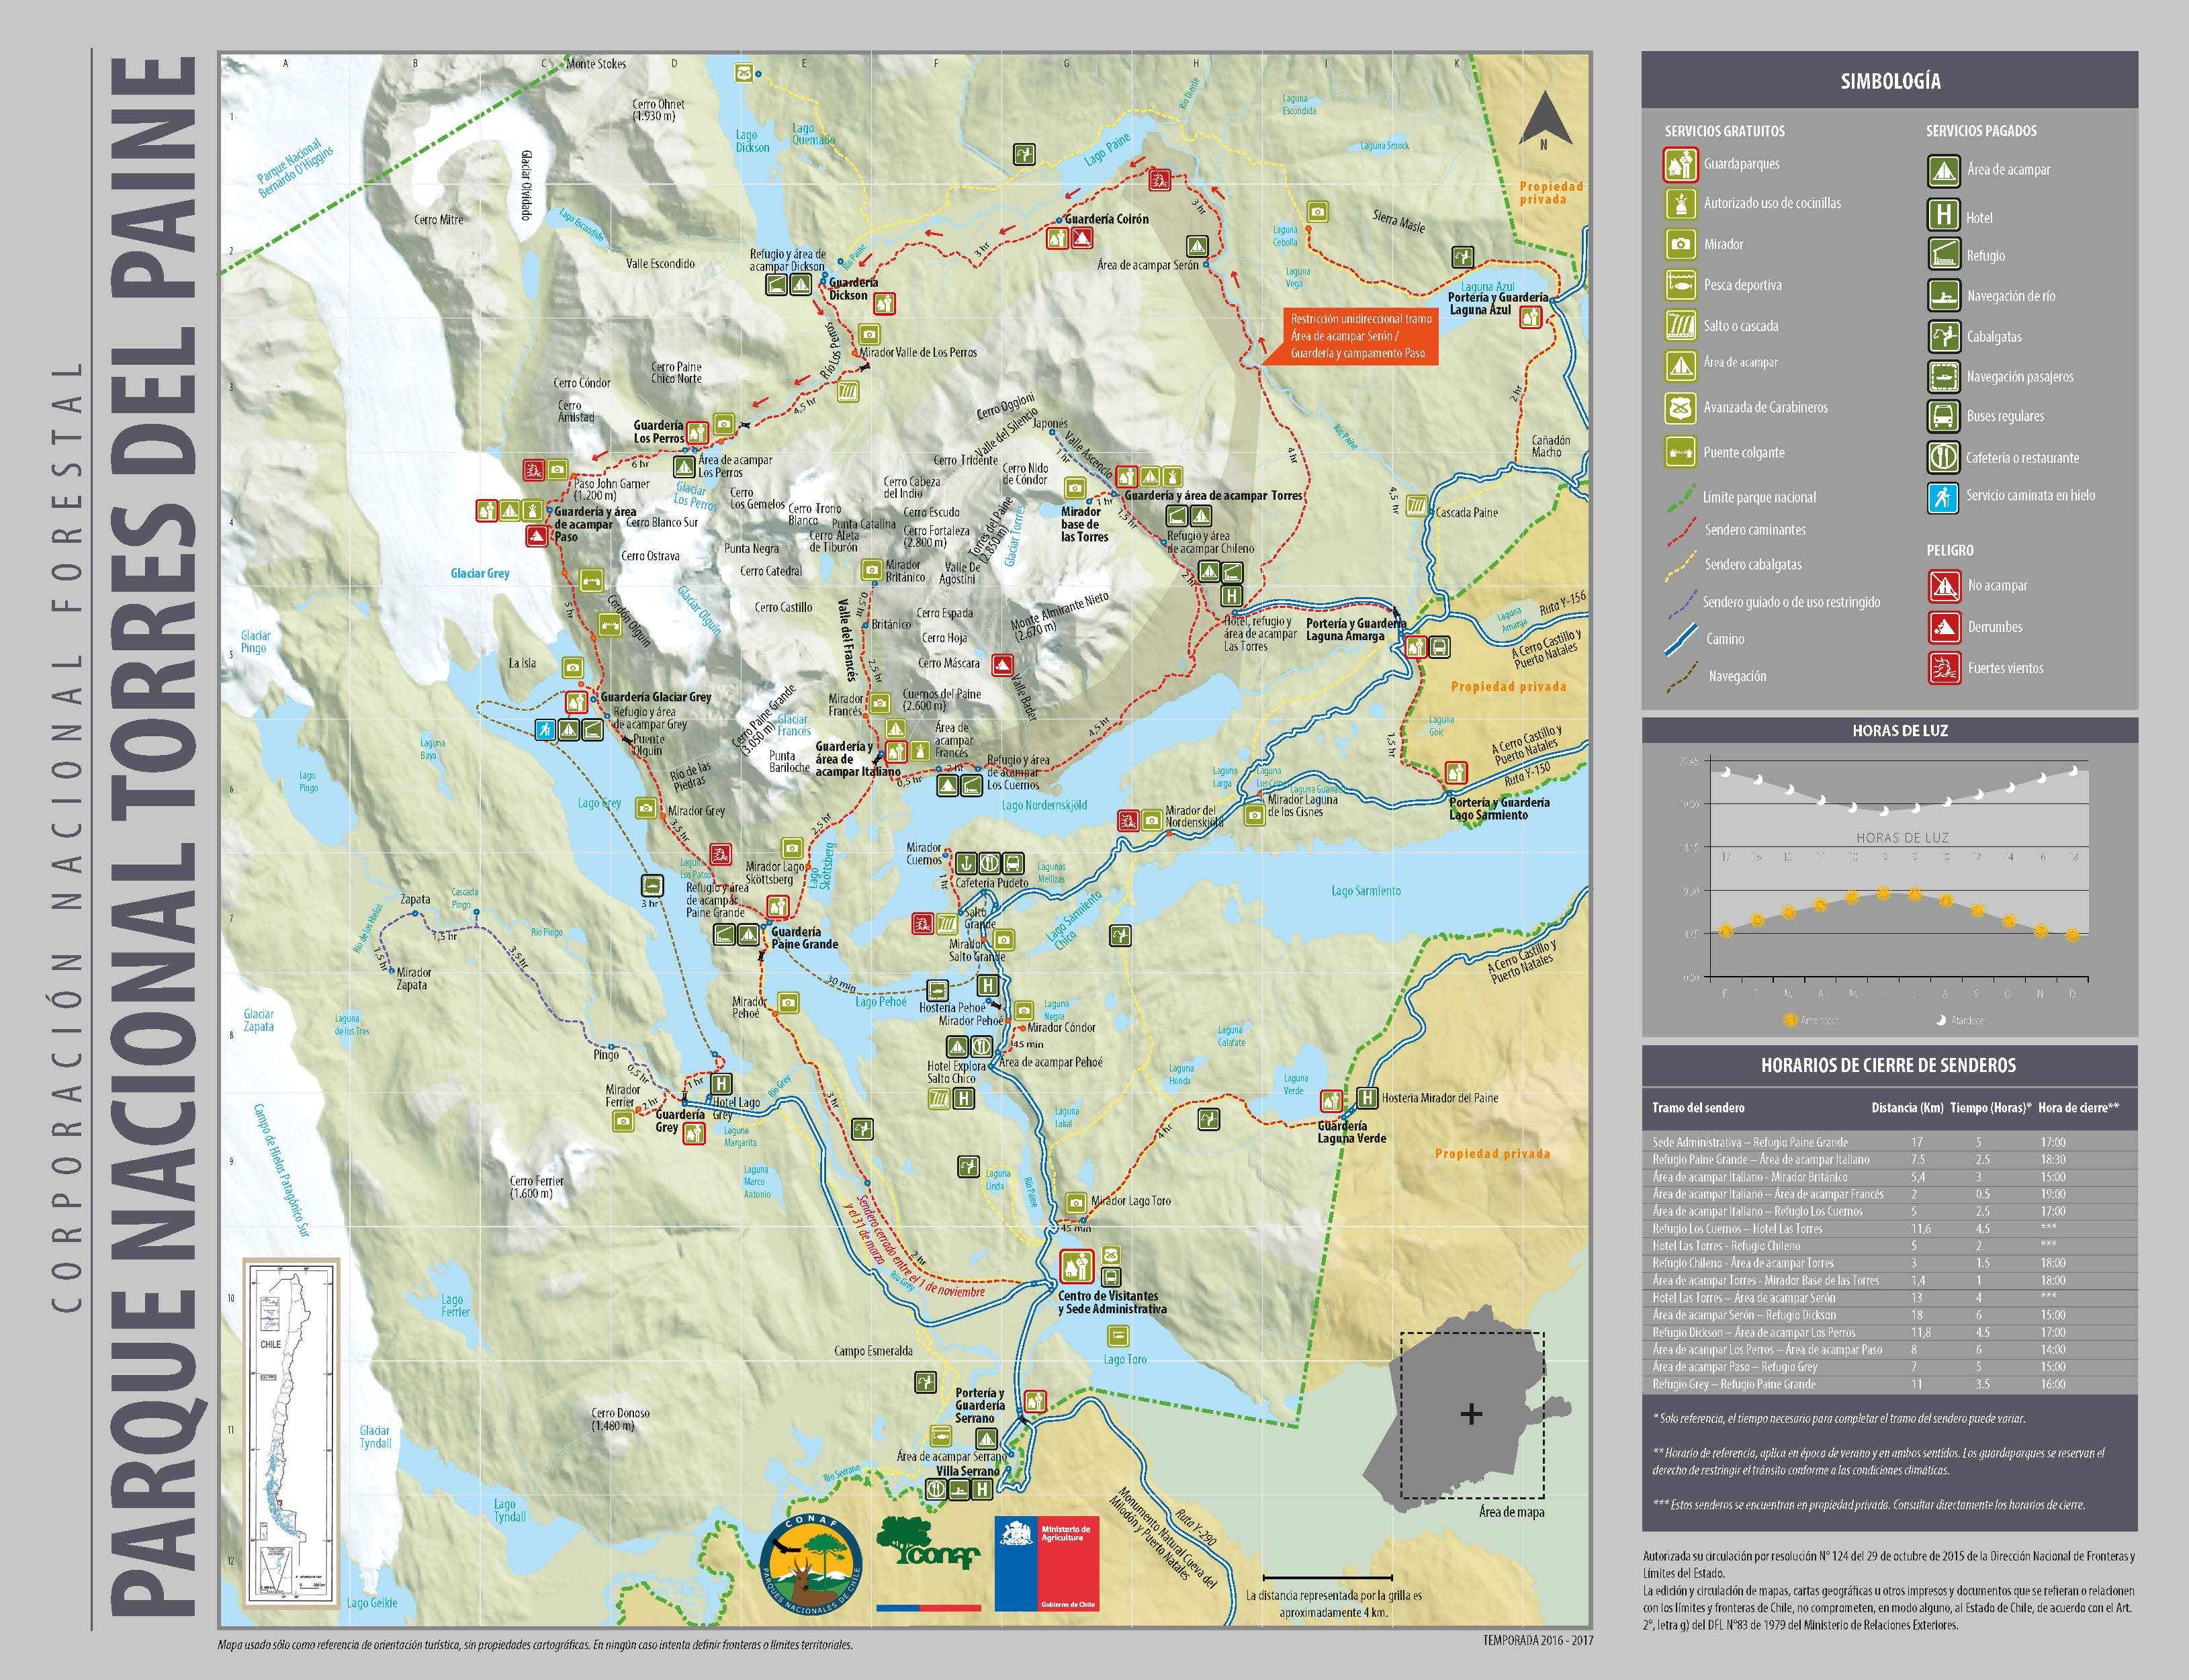 las terminal map with How To Hike The Torres Del Paine O Circuit In Patagonia on Barbara Leigh in addition 8559393235 together with Cruise Season Lanzarote 2014 15 attachments besides 3206 Guia De Logro Cazador De Monstruos De Gorgrond as well Las Rozas De Madrid.